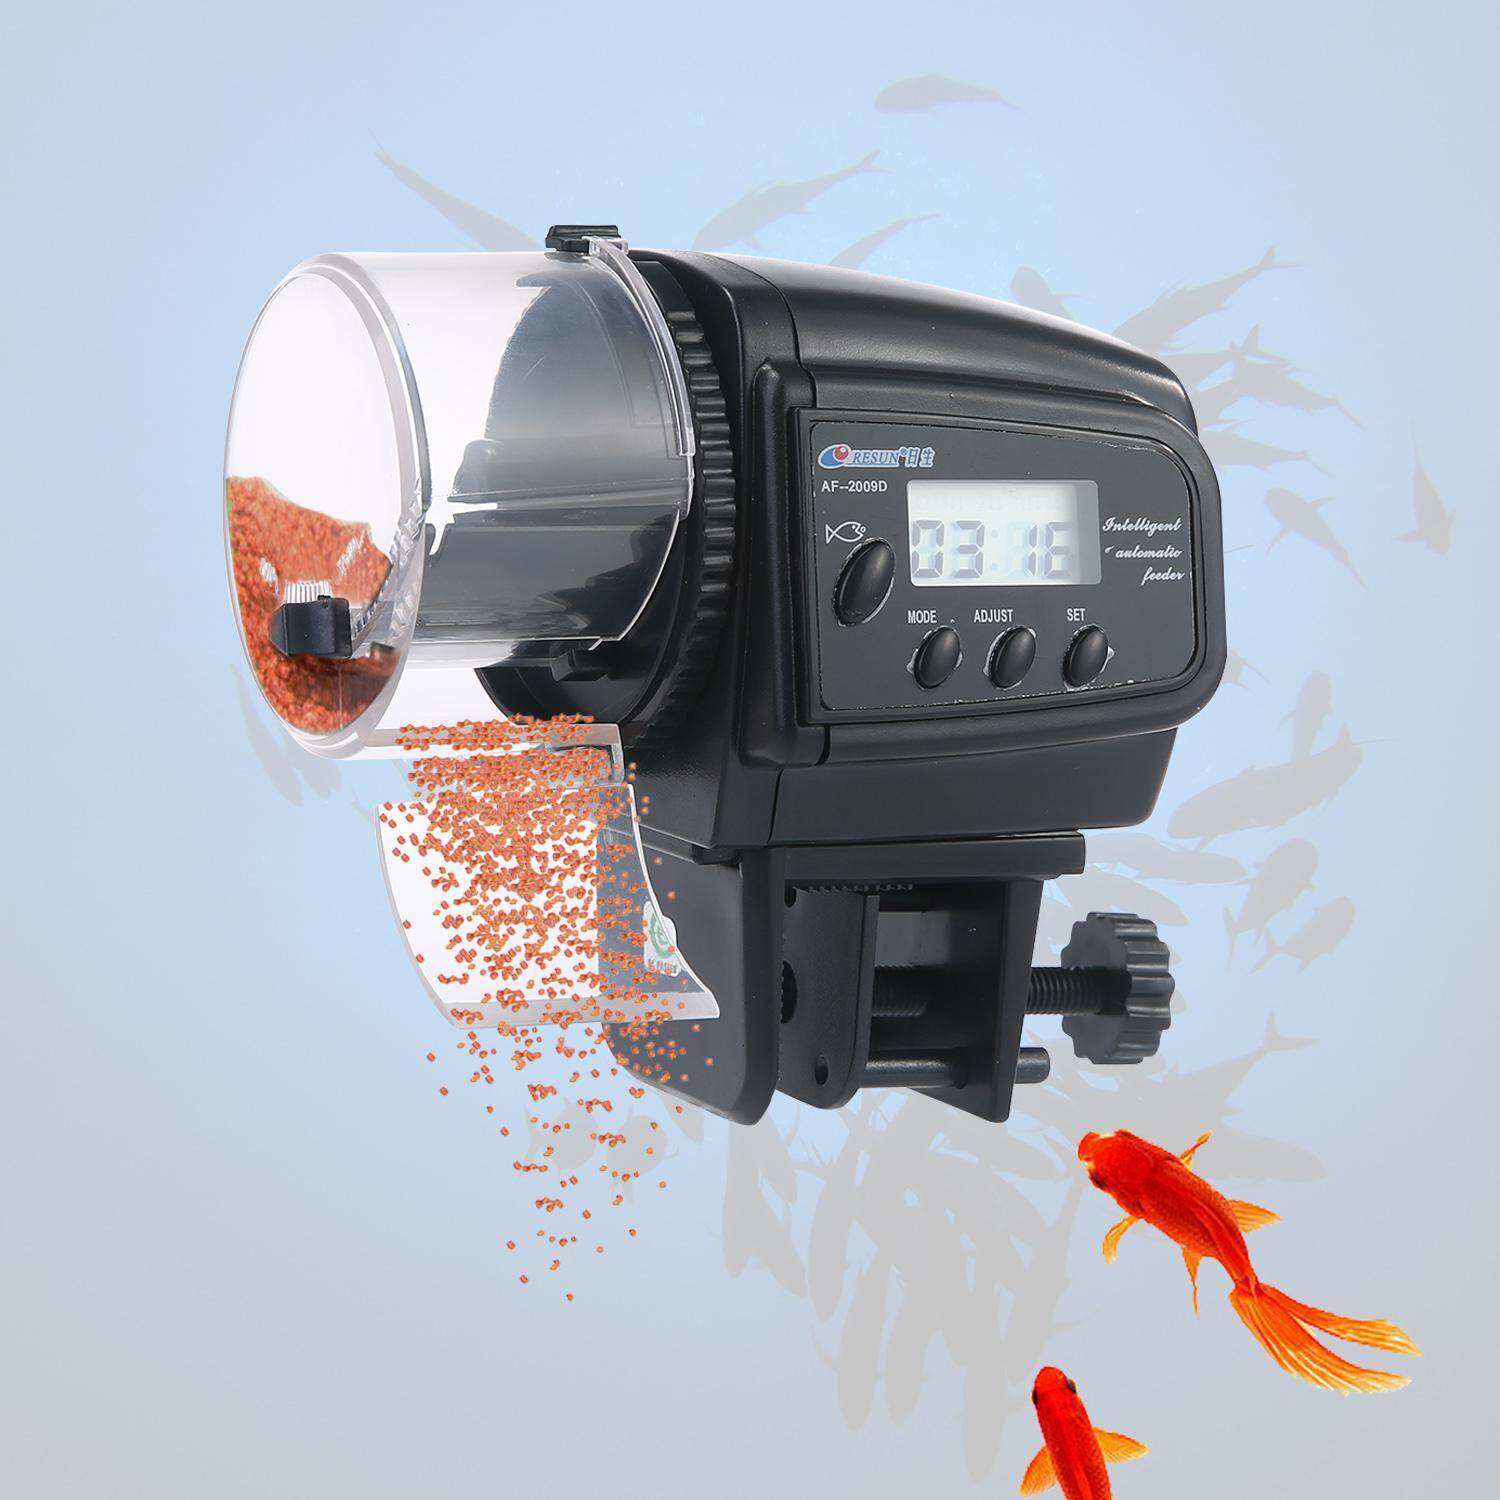 Aolvo Fish Feeder, Automatic Fish Feeder, Aquarium Tank Auto Fish Food Timer - Intl By Aolvo.